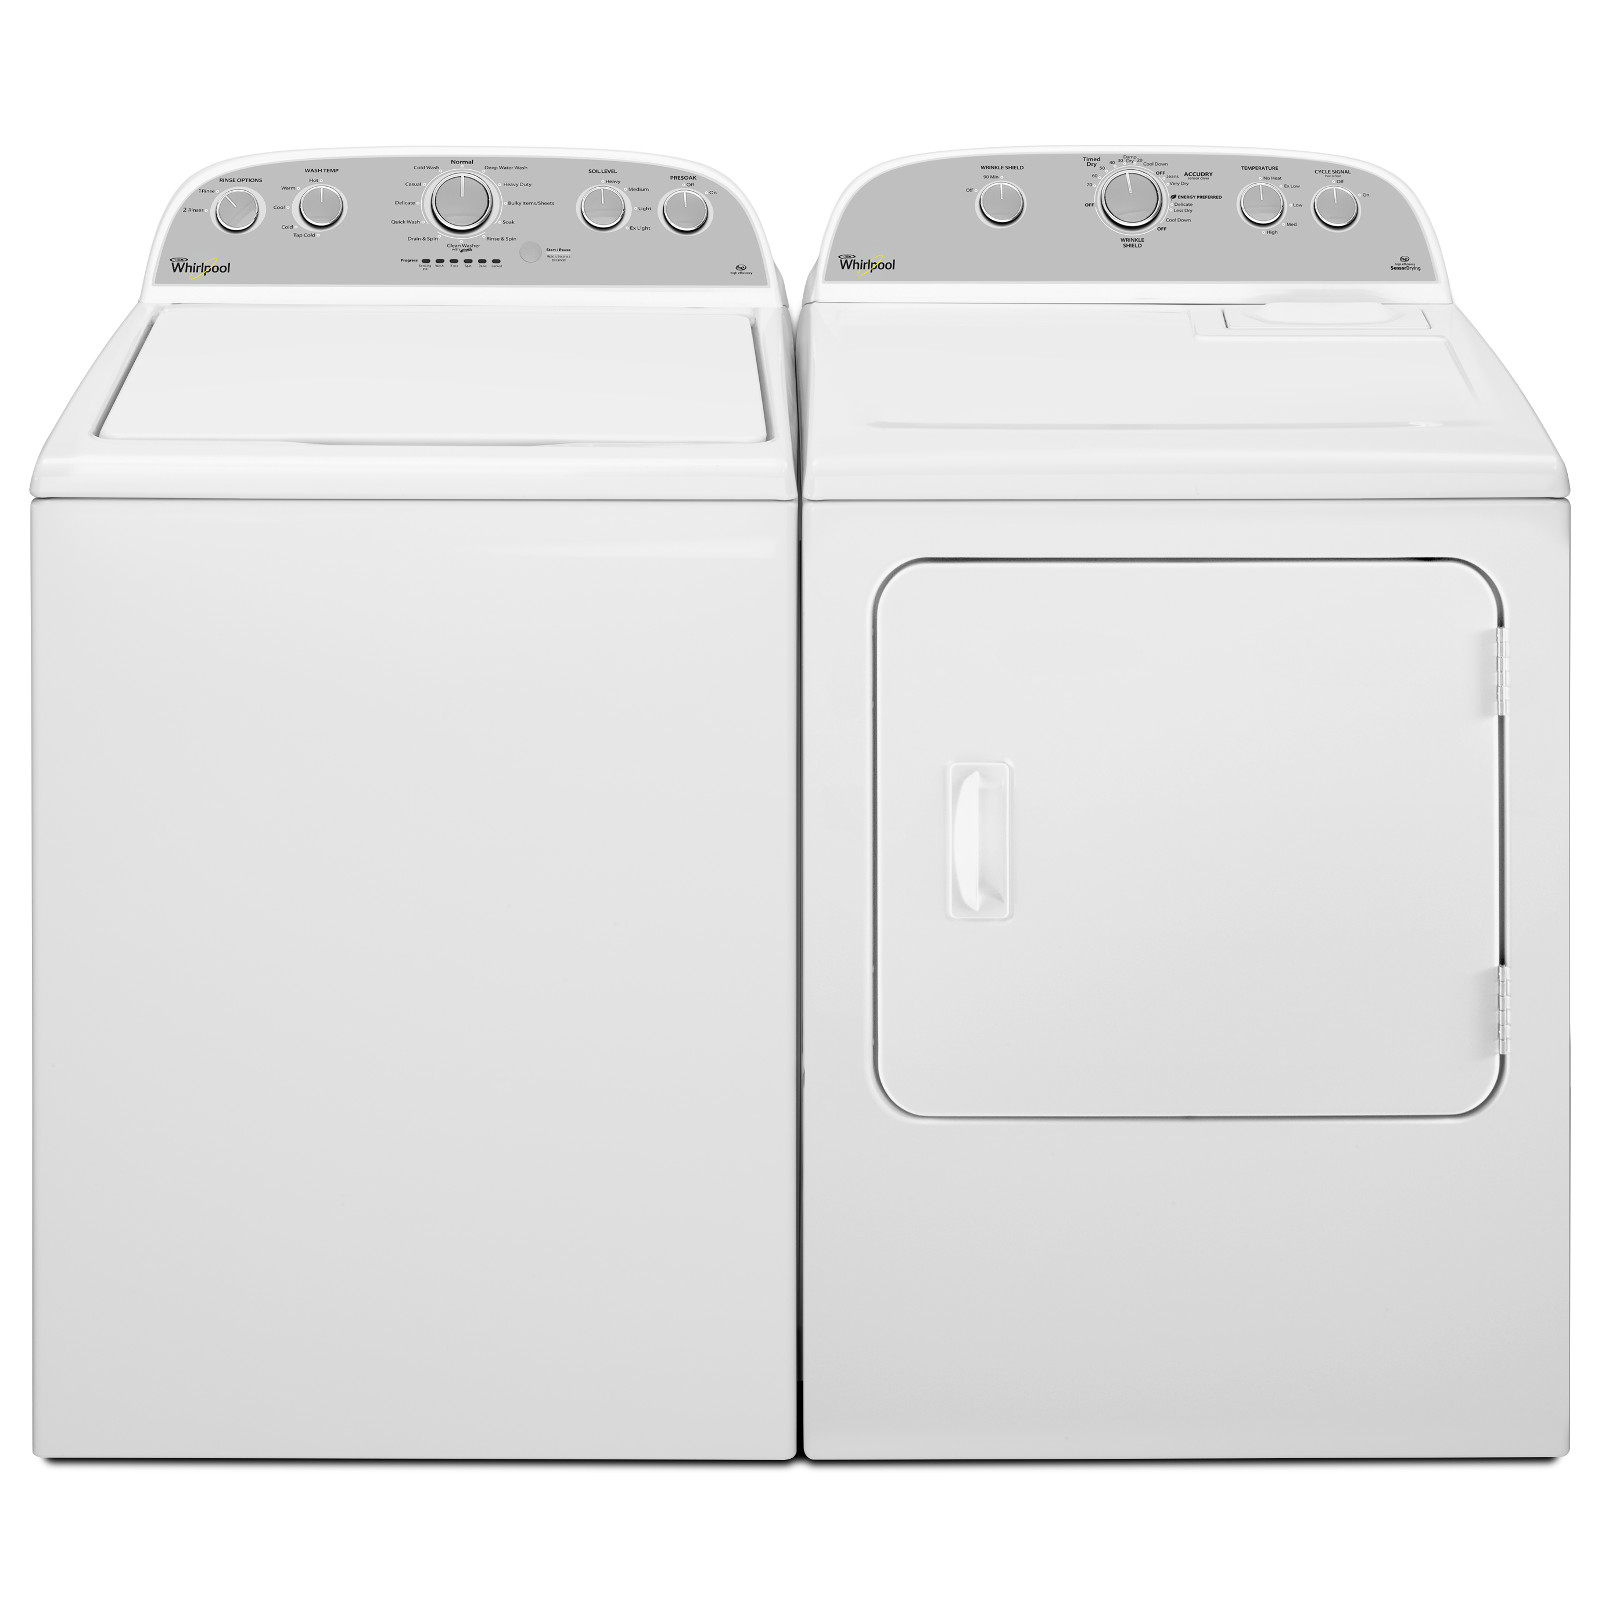 Whirlpool WED4995EW 5.9 cu. ft. Electric Dryer - White